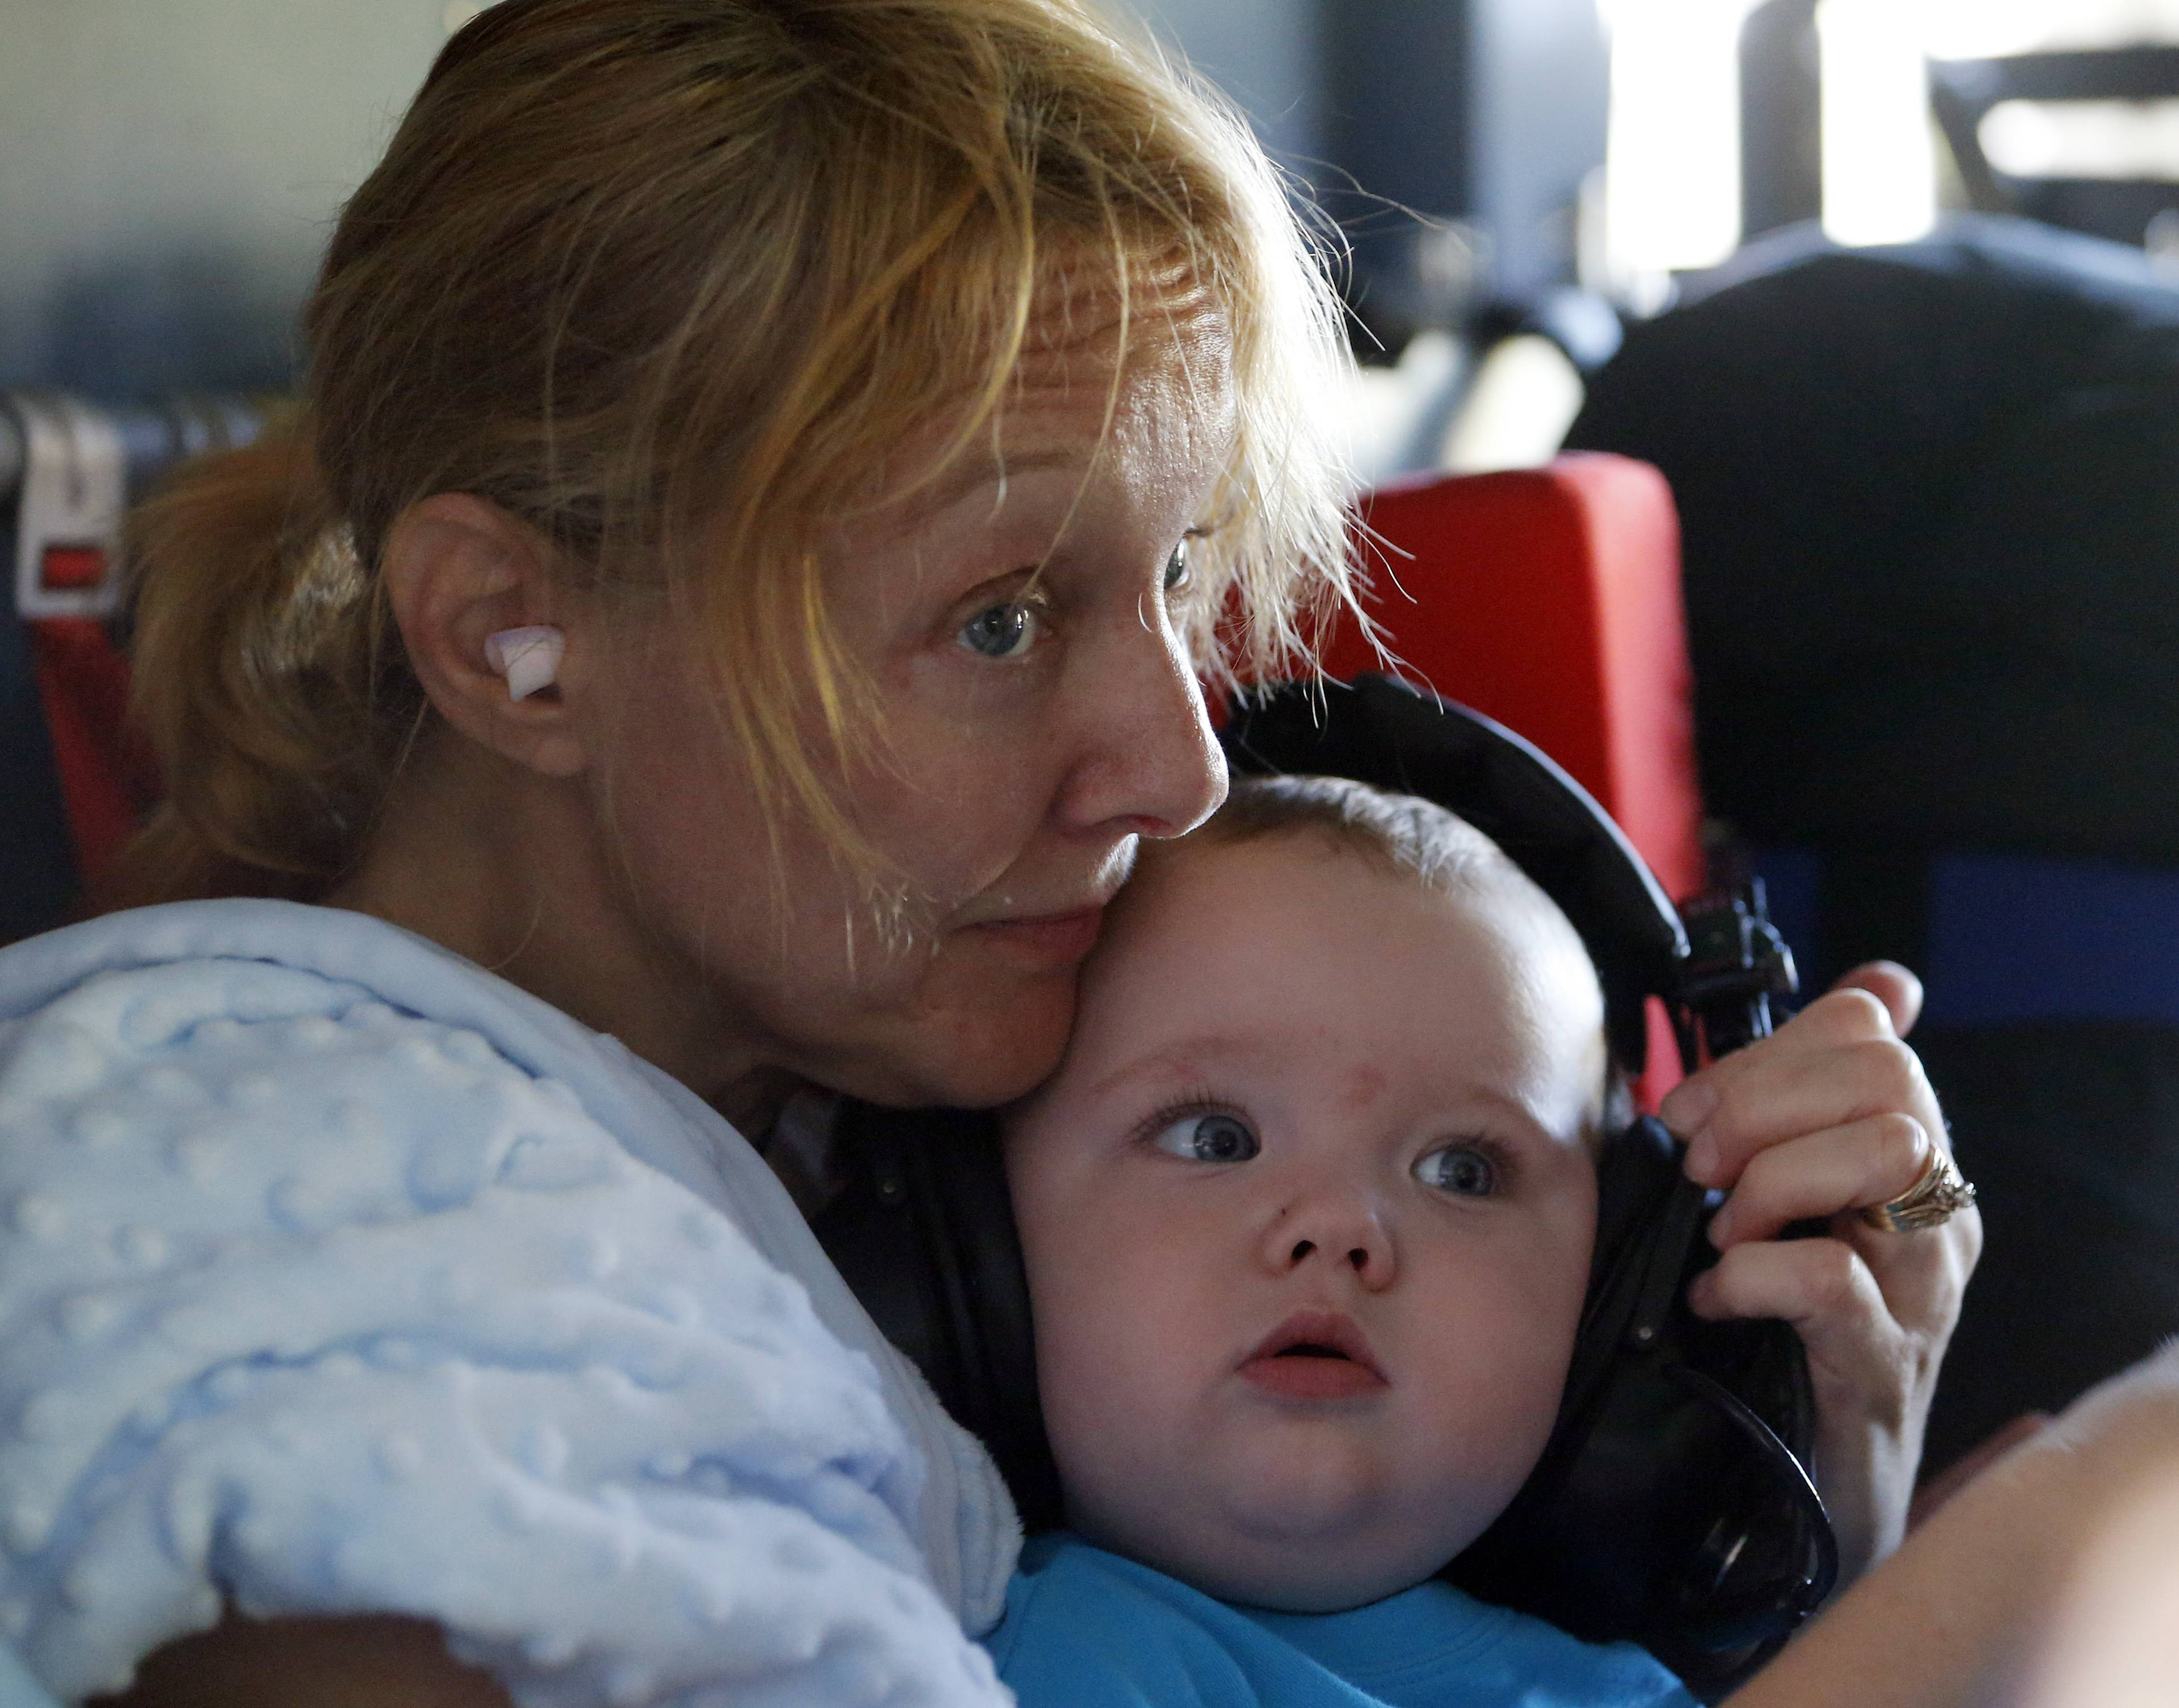 Catherine Riggs, holds her grandson Luke Humphrey as she listens to a briefing aboard a U.S. Coast Guard helicopter in Burgaw , N.C., Tuesday, Sept. 18, 2018. The family was rescued by the crew and taken to a shelter in Wilmington. (AP Photo/Steve Helber)